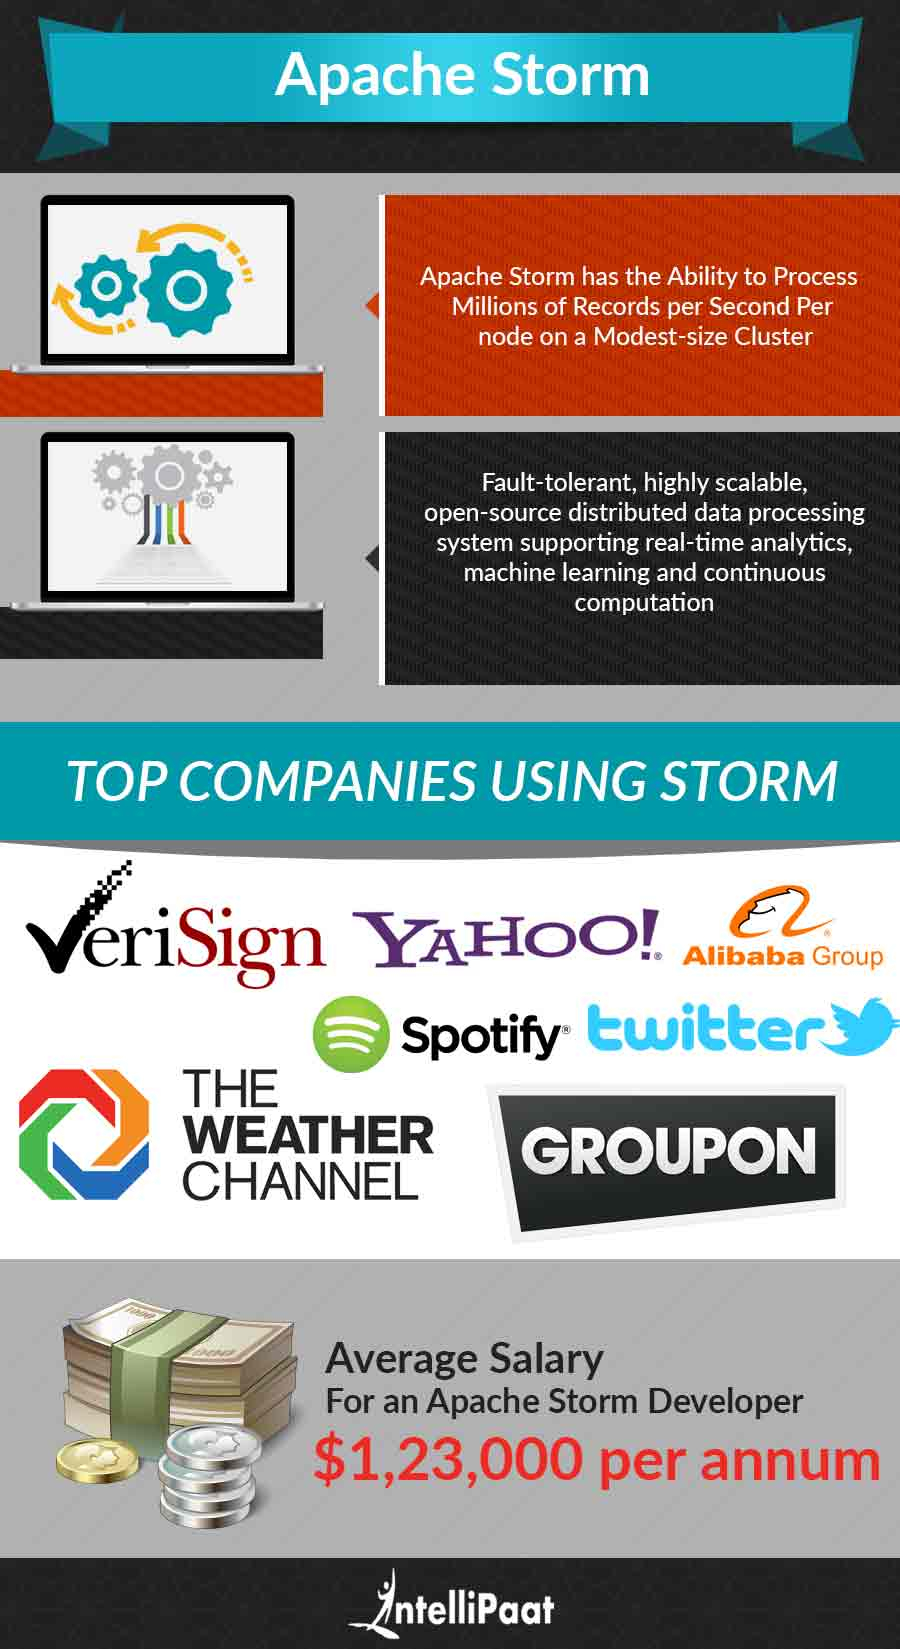 Apache-Storm-Infographic